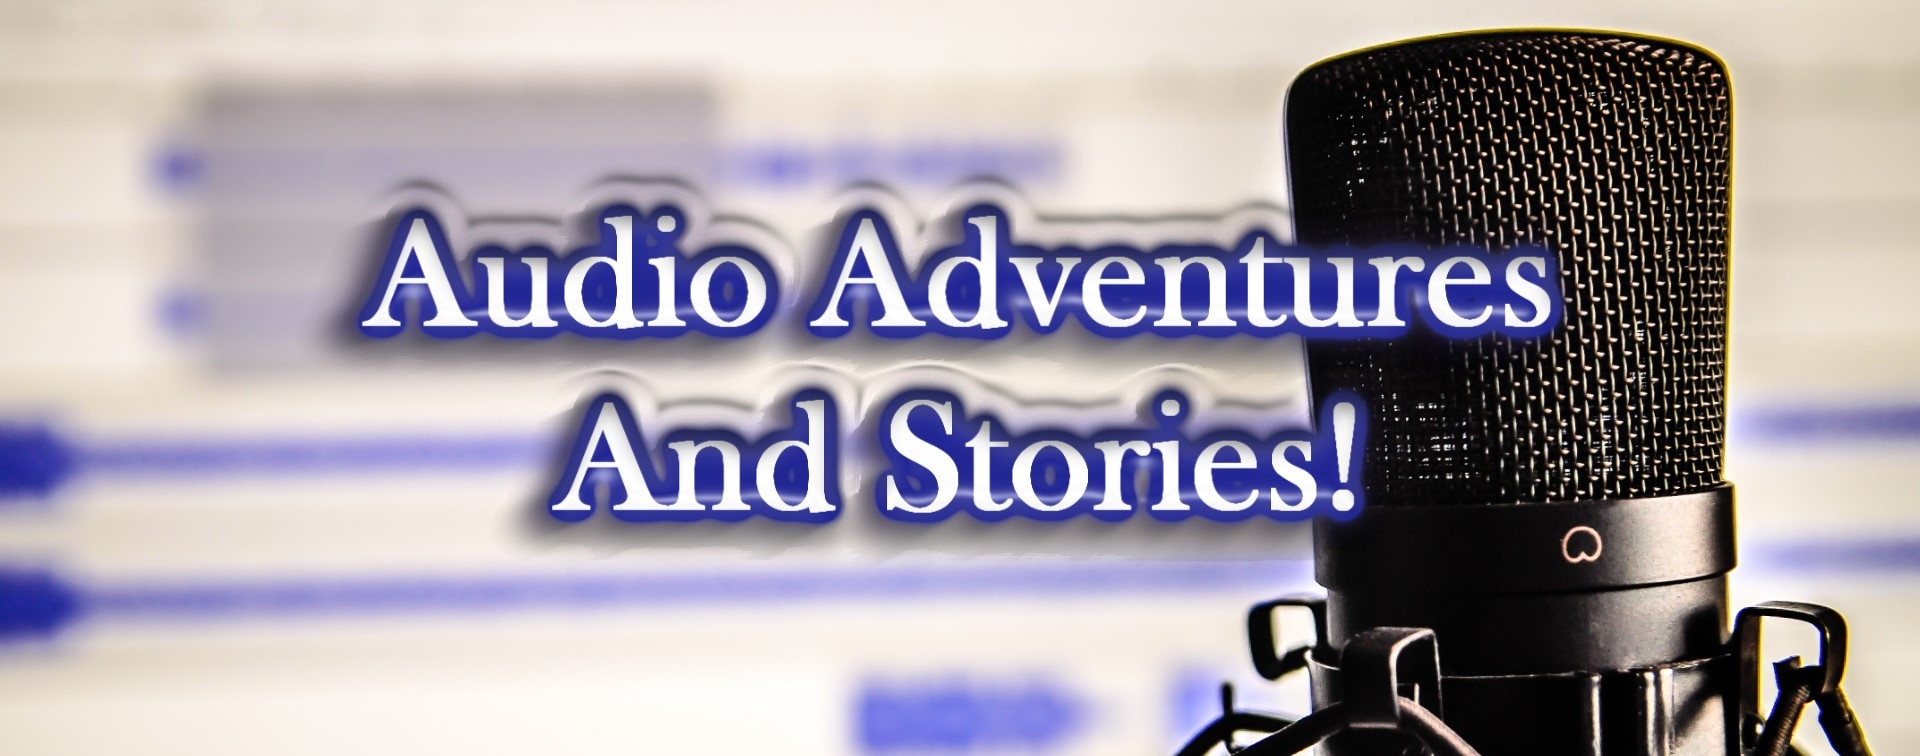 audio-adventures-and-stories